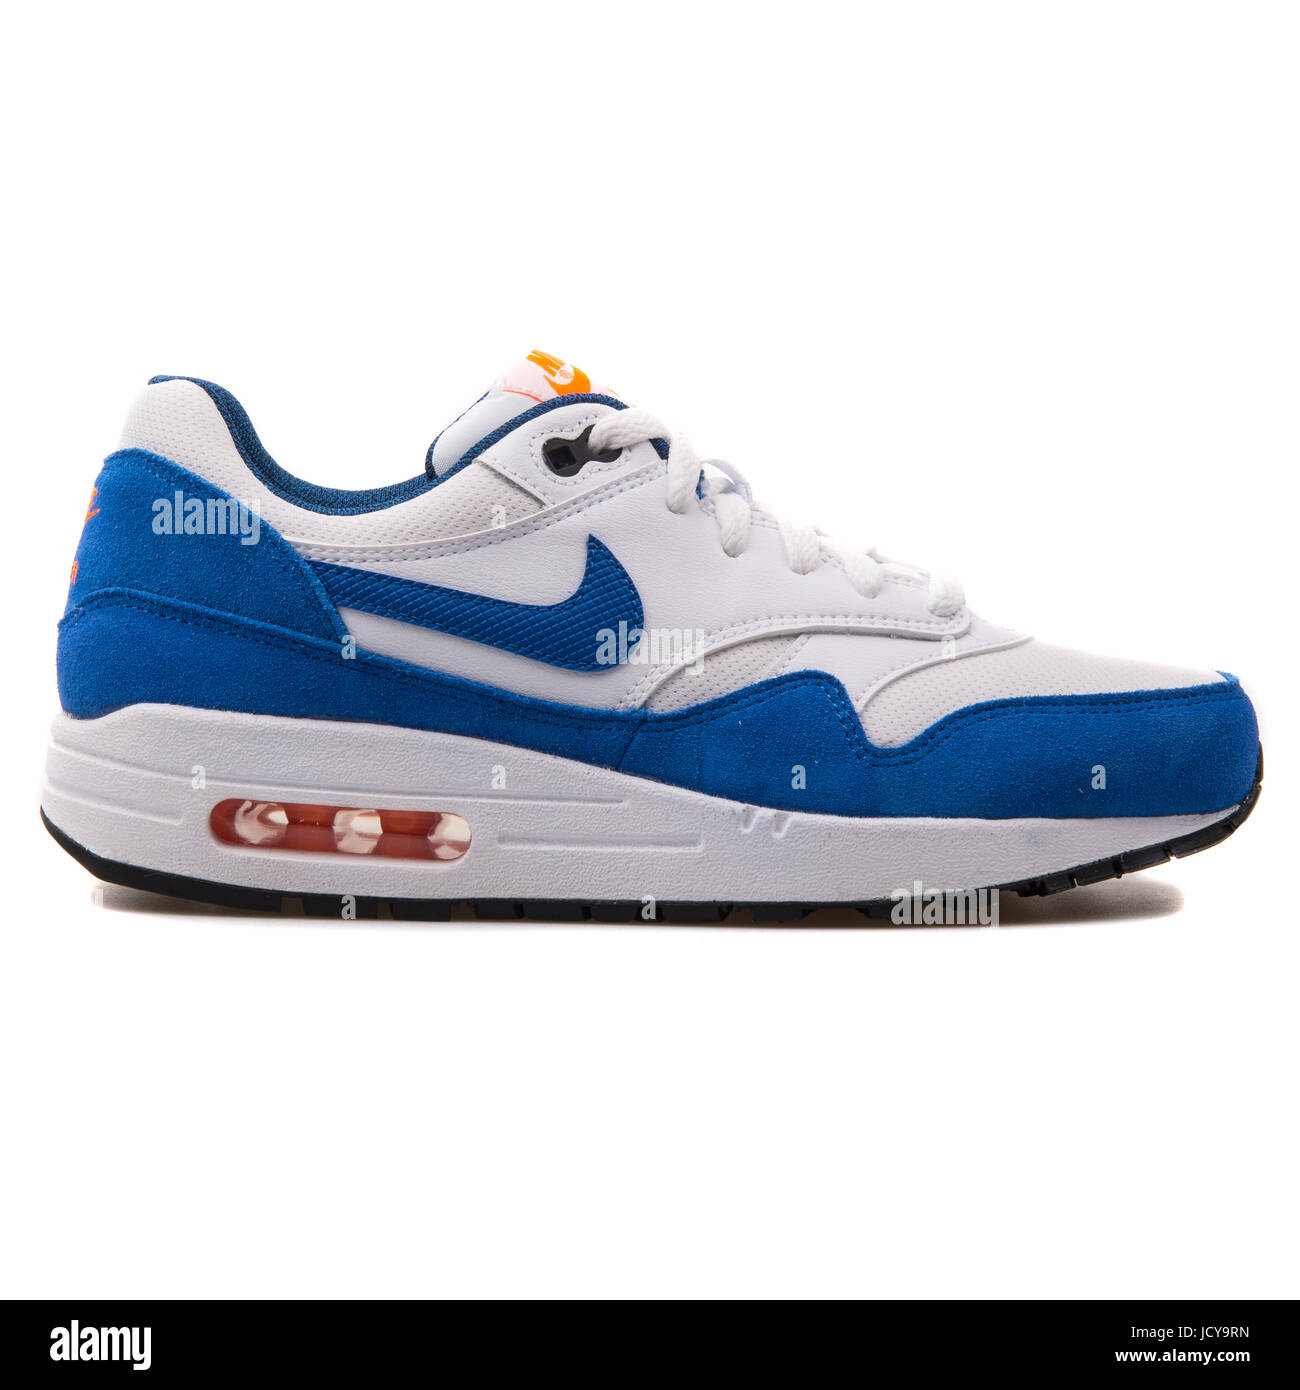 246b0924 Nike Air Max 1 (GS) White and Royal Blue Youth's Running Shoes - 555766-120